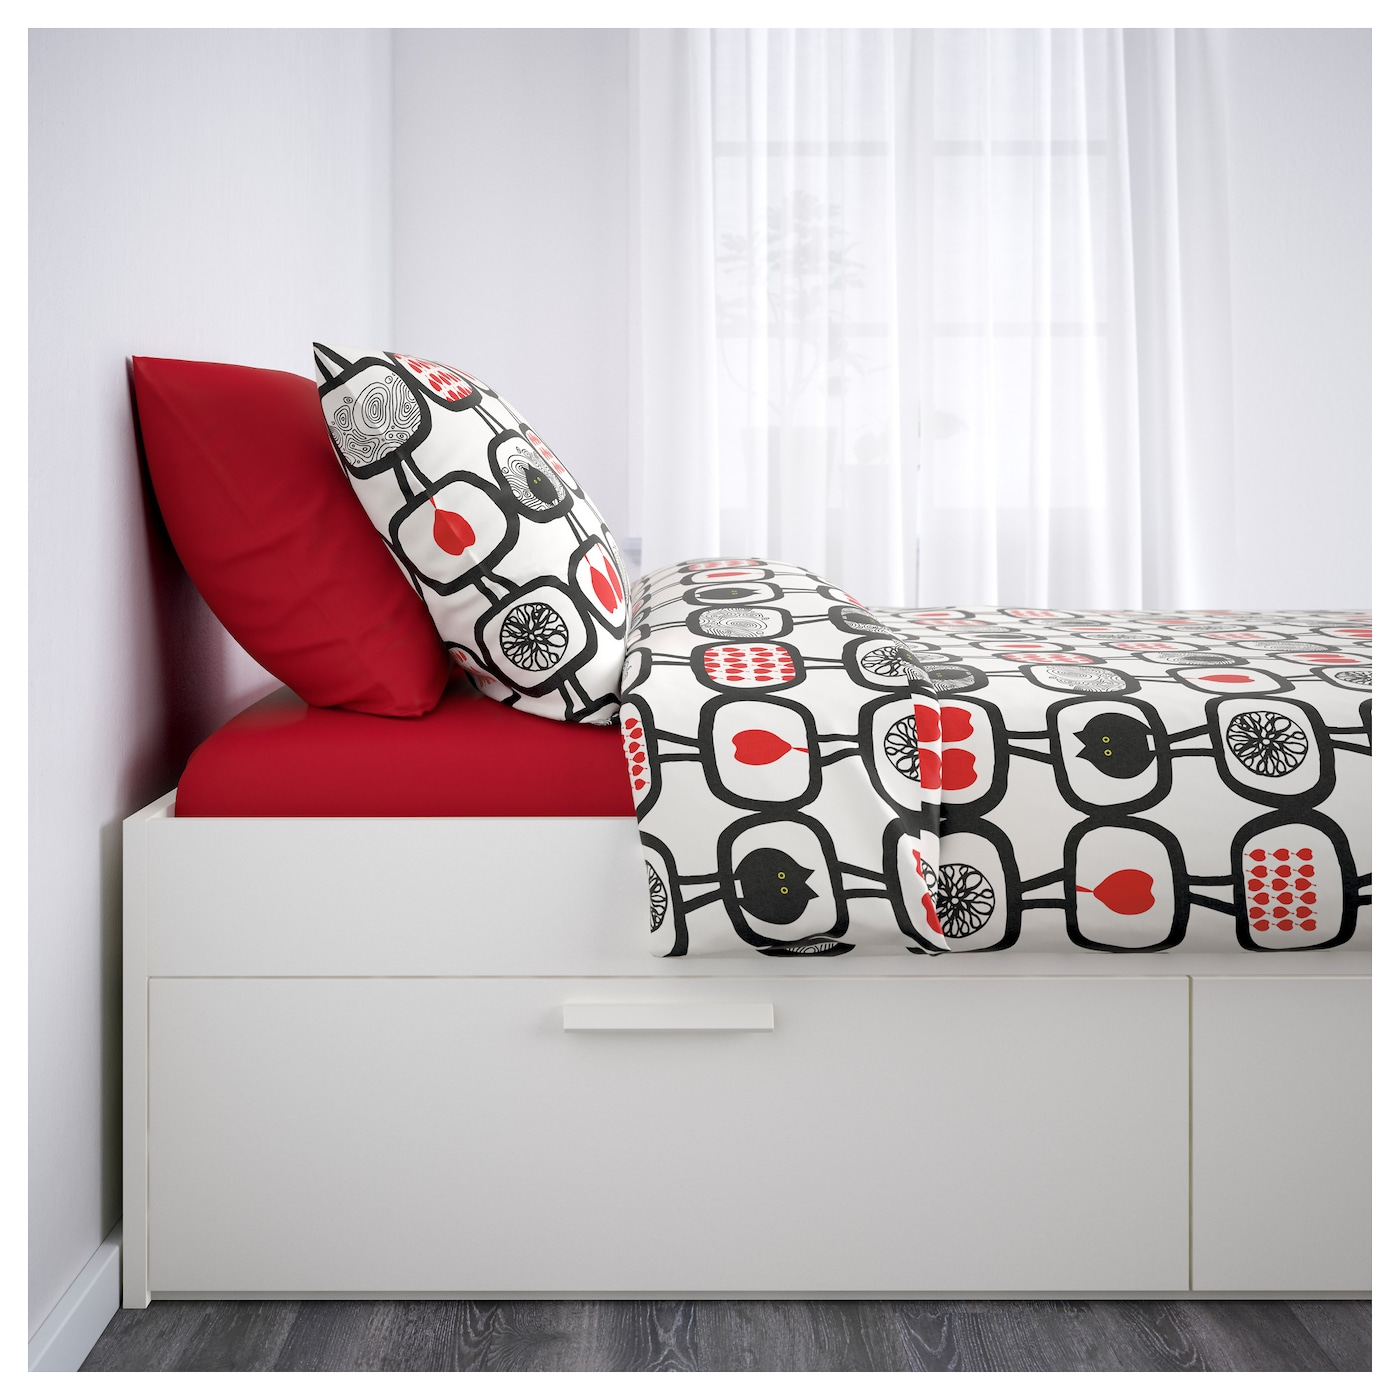 brimnes cadre lit avec rangement blanc 160x200 cm ikea. Black Bedroom Furniture Sets. Home Design Ideas